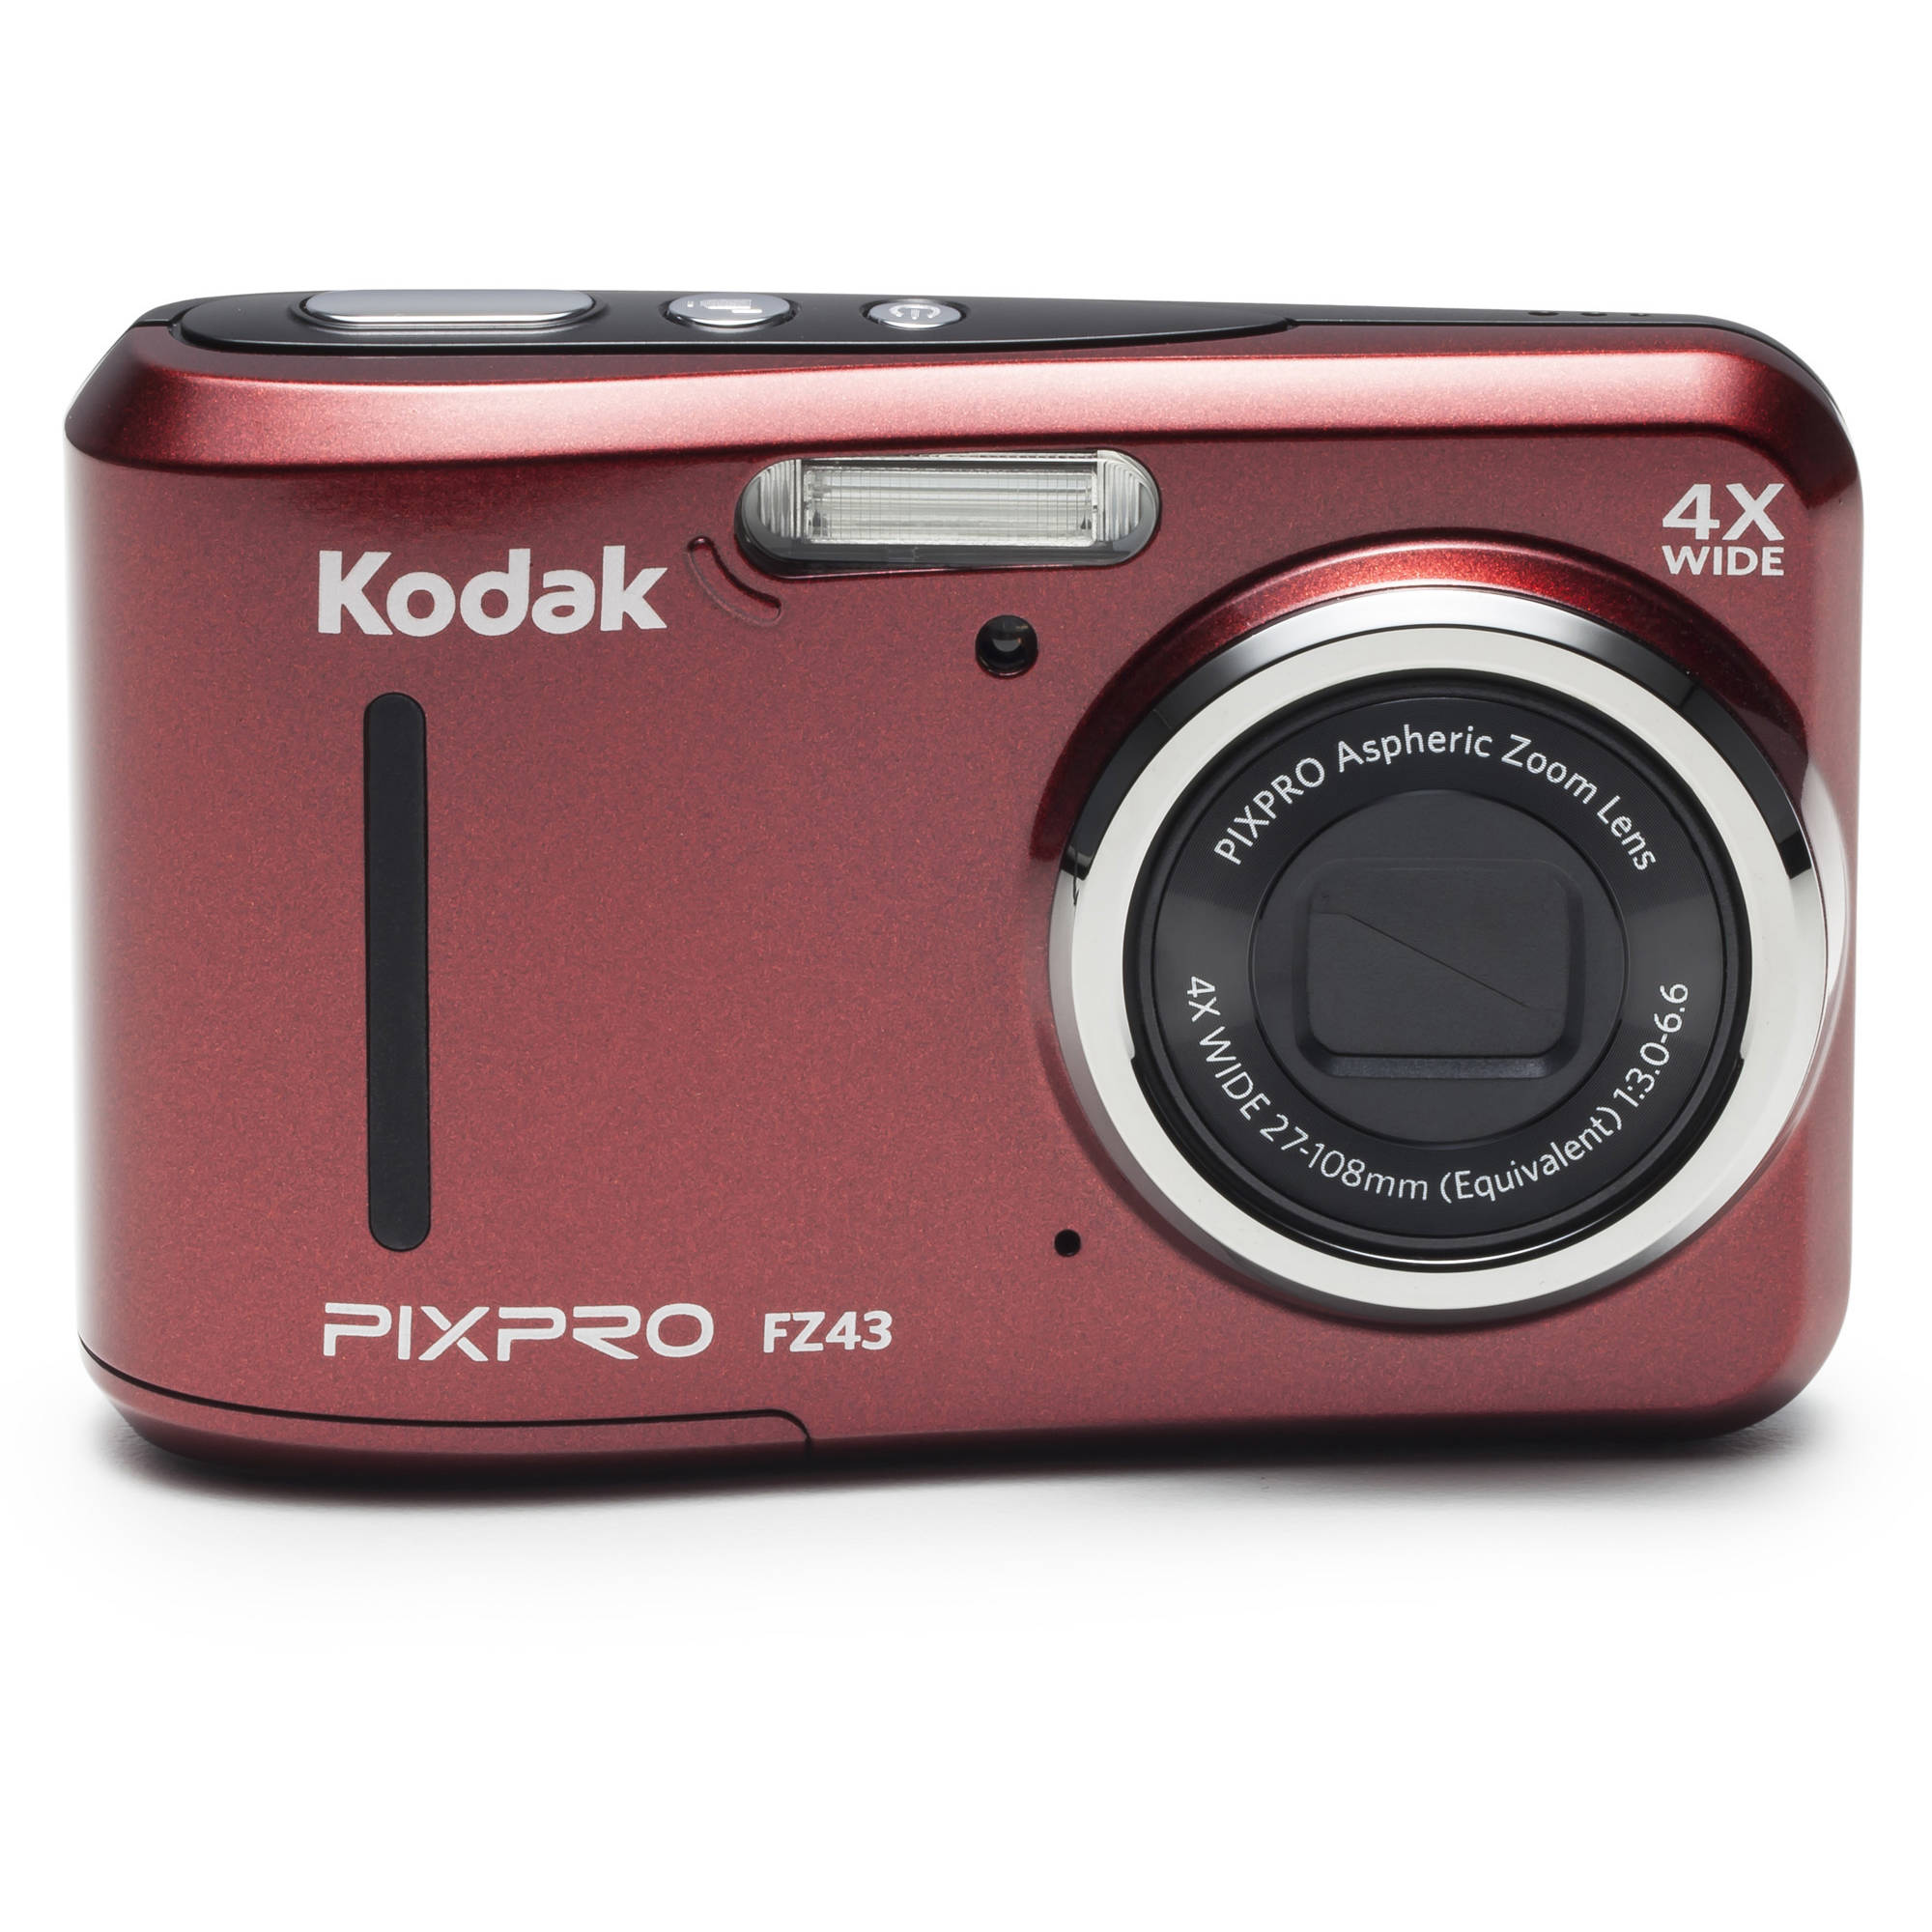 Kodak Red PIXPRO FZ43 Digital Camera with 16.15 Megapixels and 4x Optical Zoom